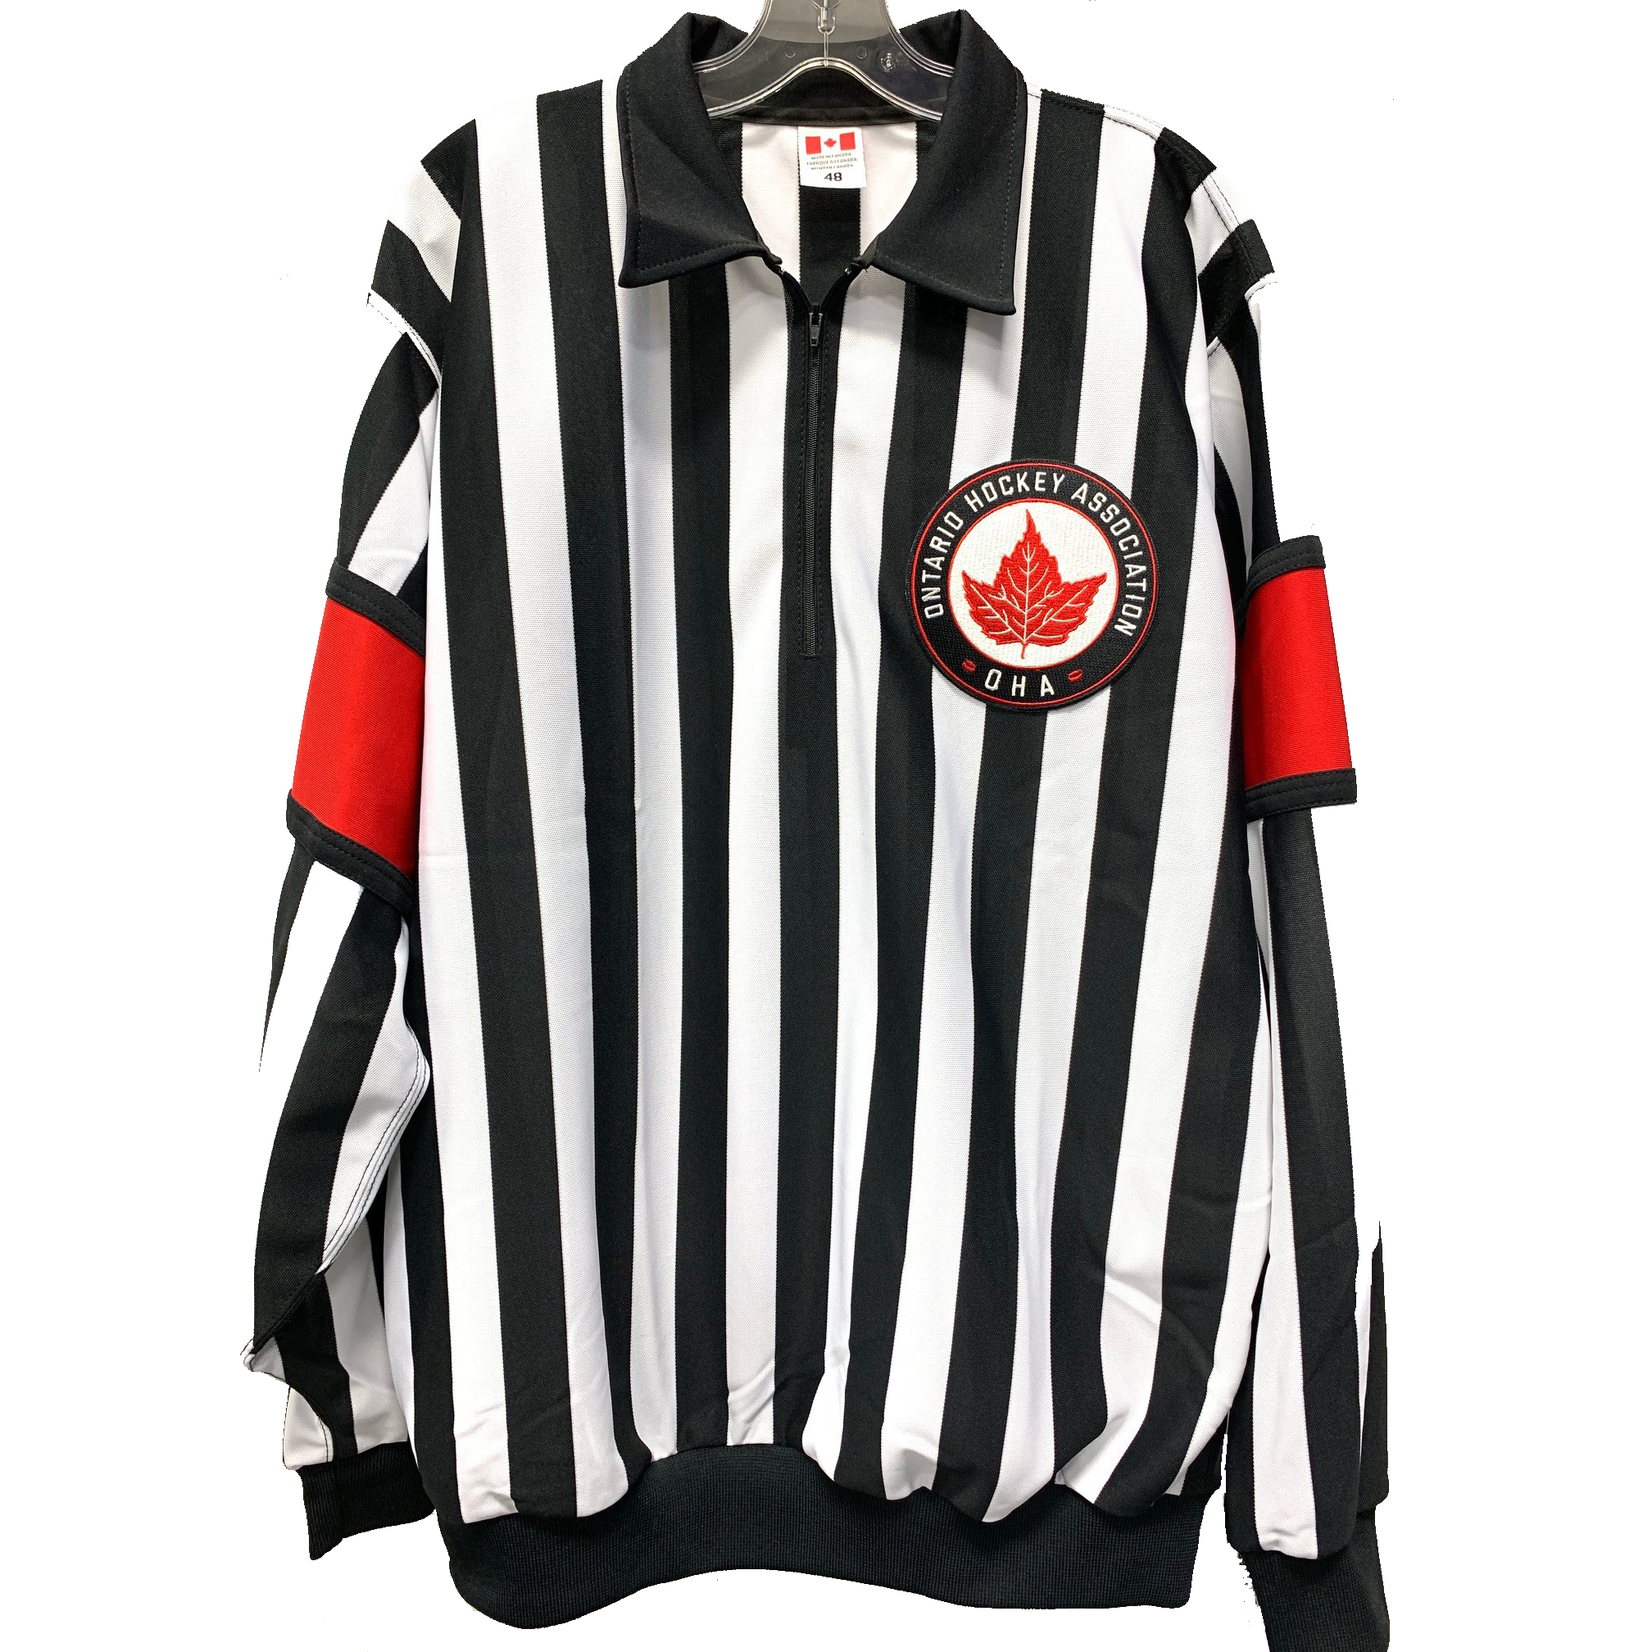 CCM CCM Pro Ref Jersey - Bands OHA Crested